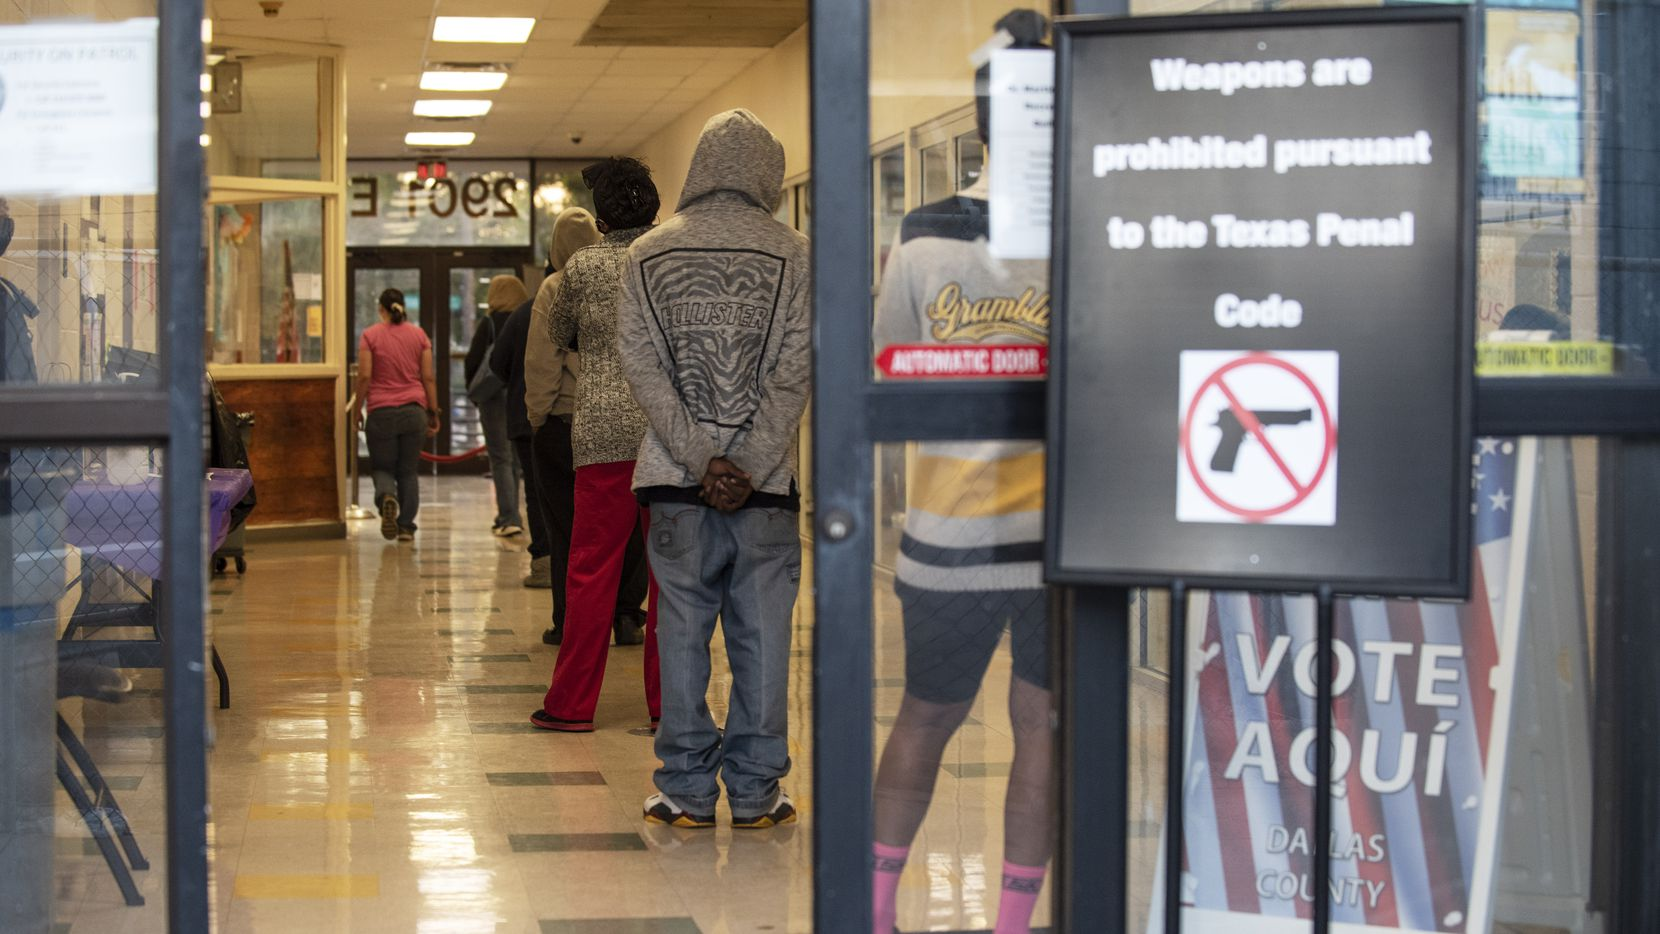 A line of 10 people wait inside a polling location to vote for the 2020 election at the Martin Luther King Jr. Recreation Center in Dallas, on Tuesday, Nov. 03, 2020. A proposed bill at the Texas House would allow election judges to carry handguns at most polling locations.